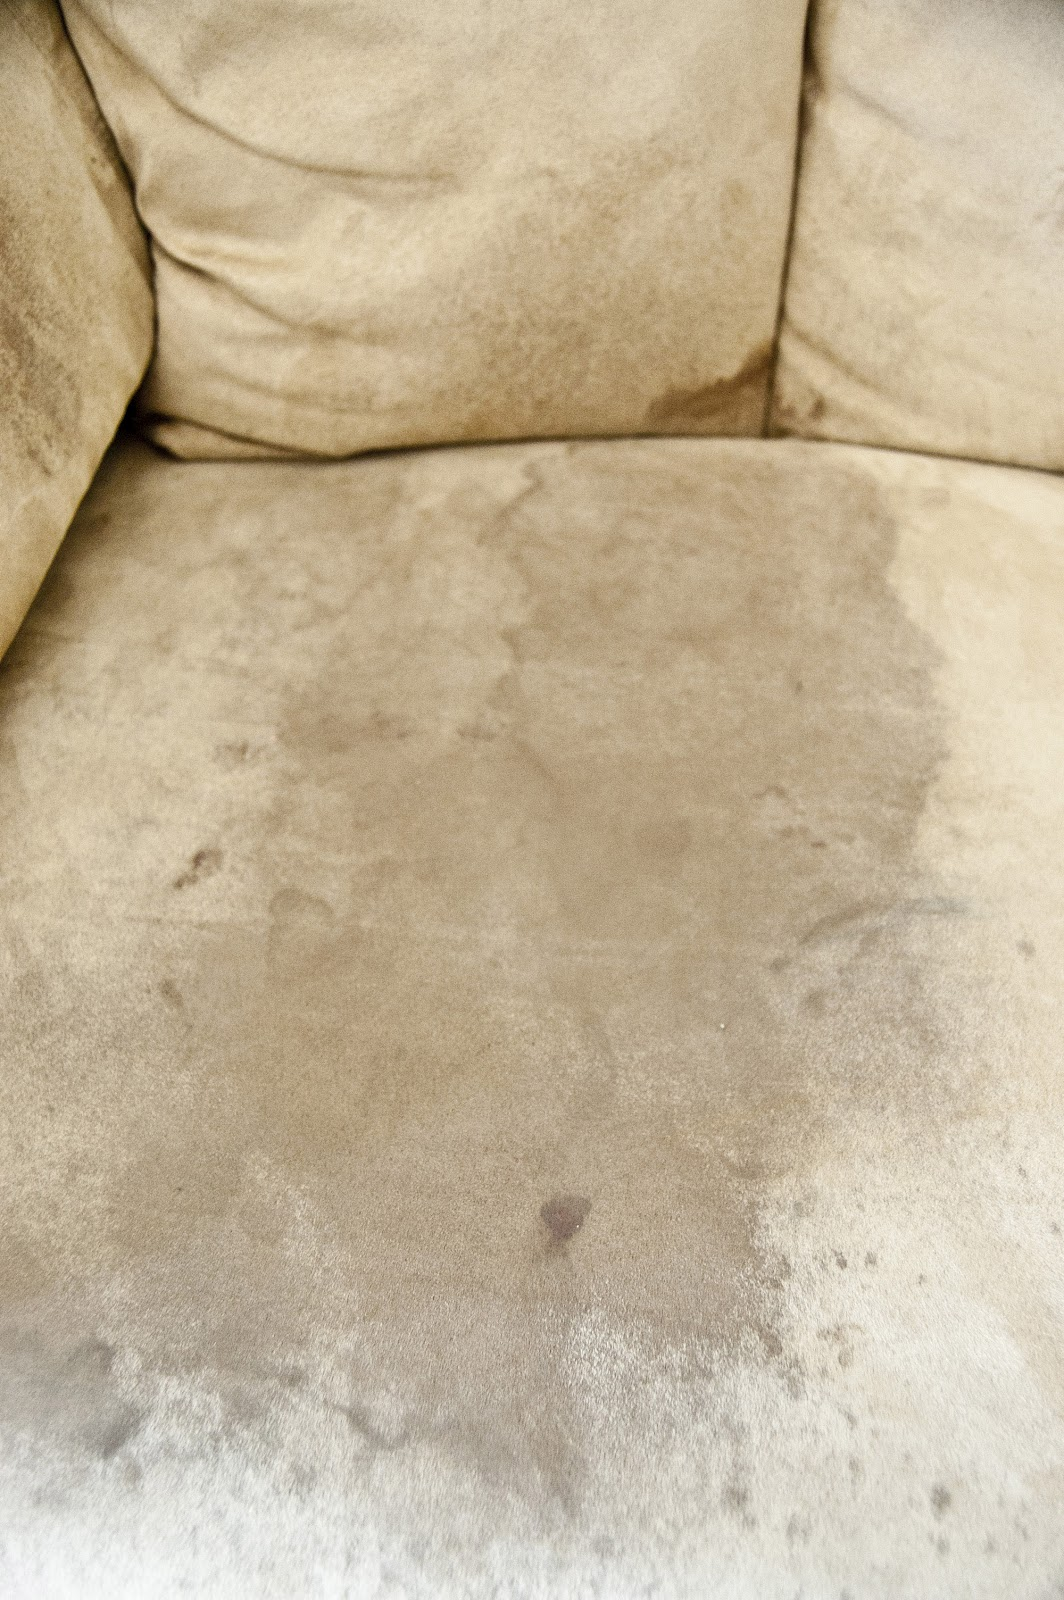 how to clean stains off your sofa cheap corner bed edinburgh 551 east a microfiber couch